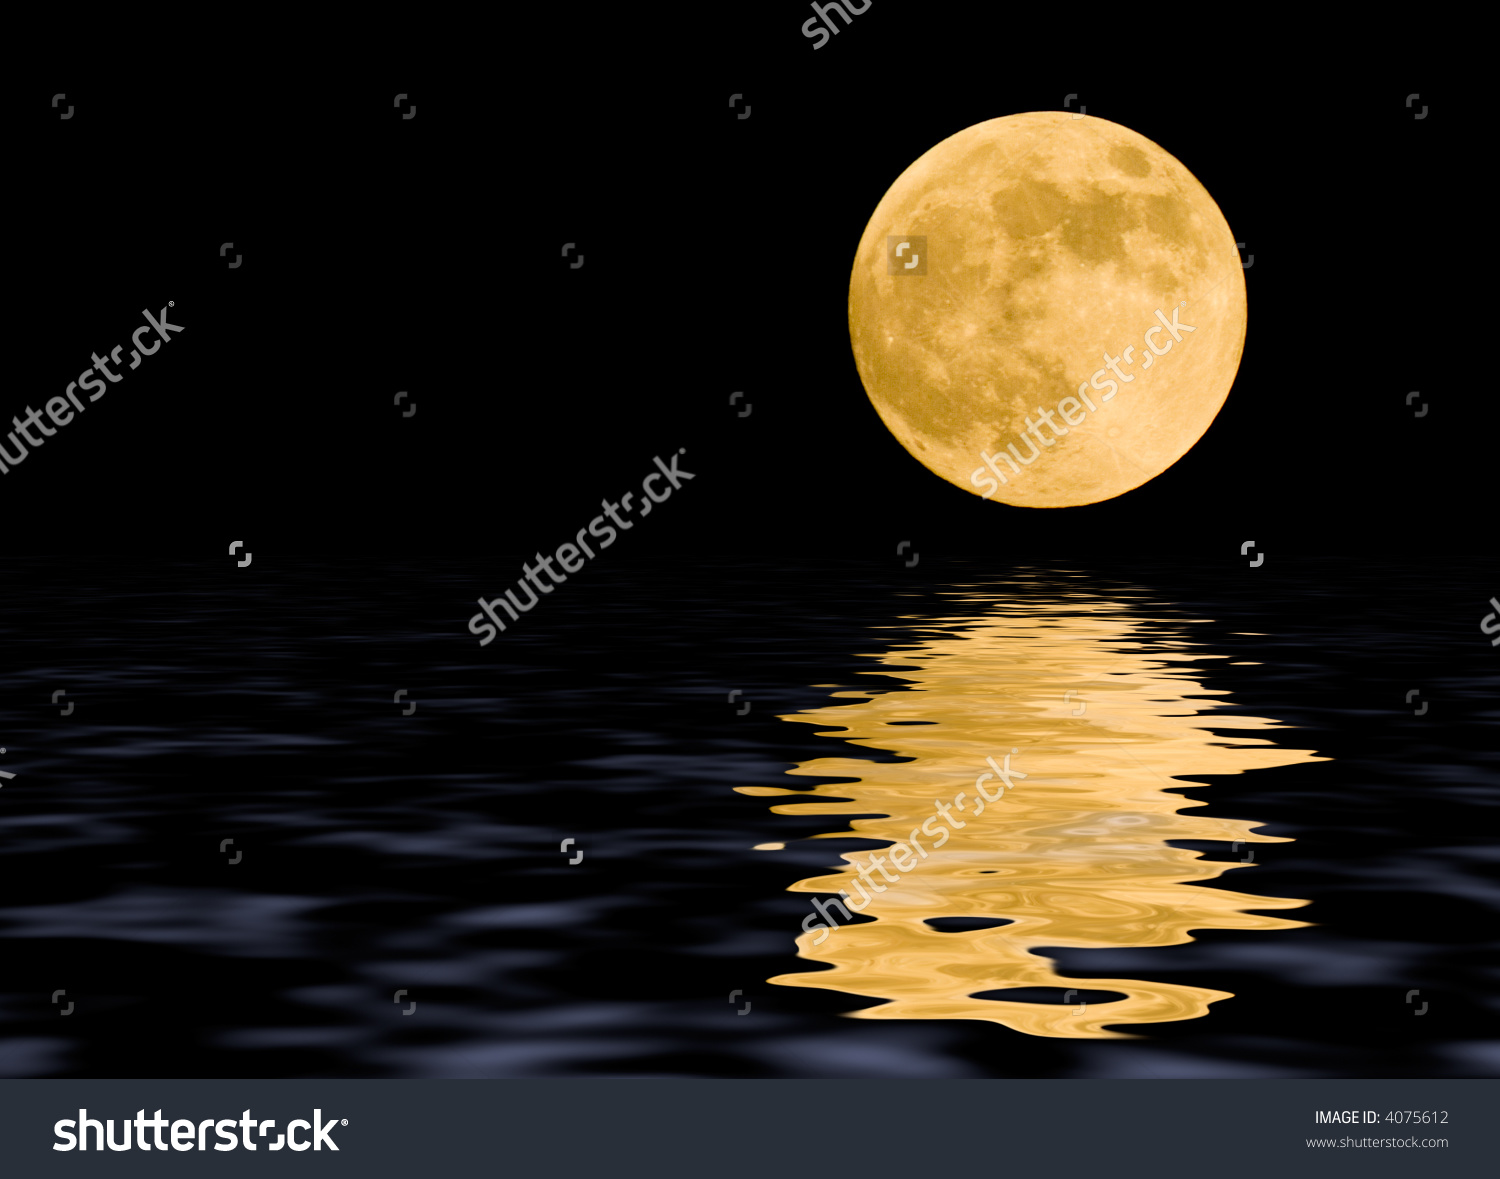 Moon At Midnight With Some Reflections In The Water Stock Photo.